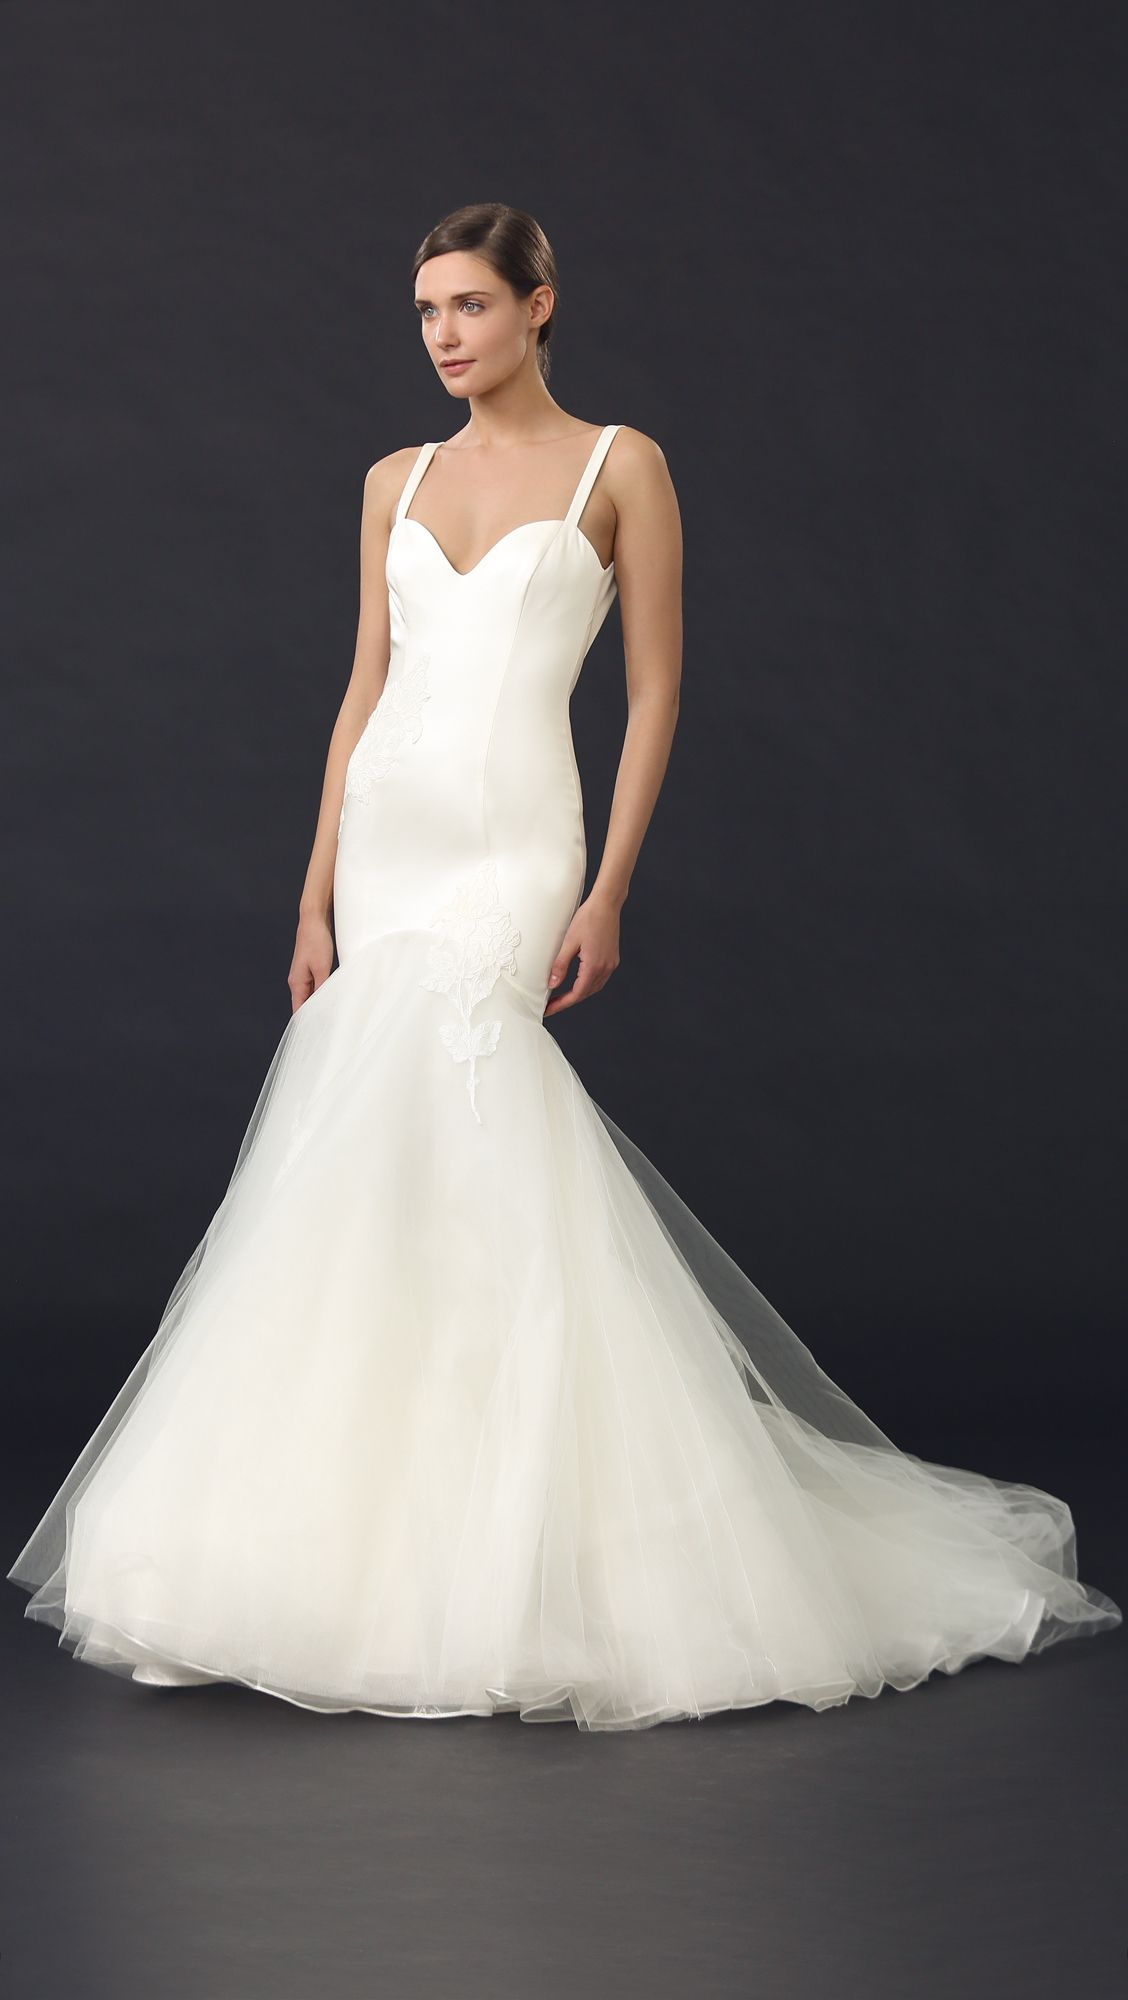 Charleston gown gowns bridal dresses katie may